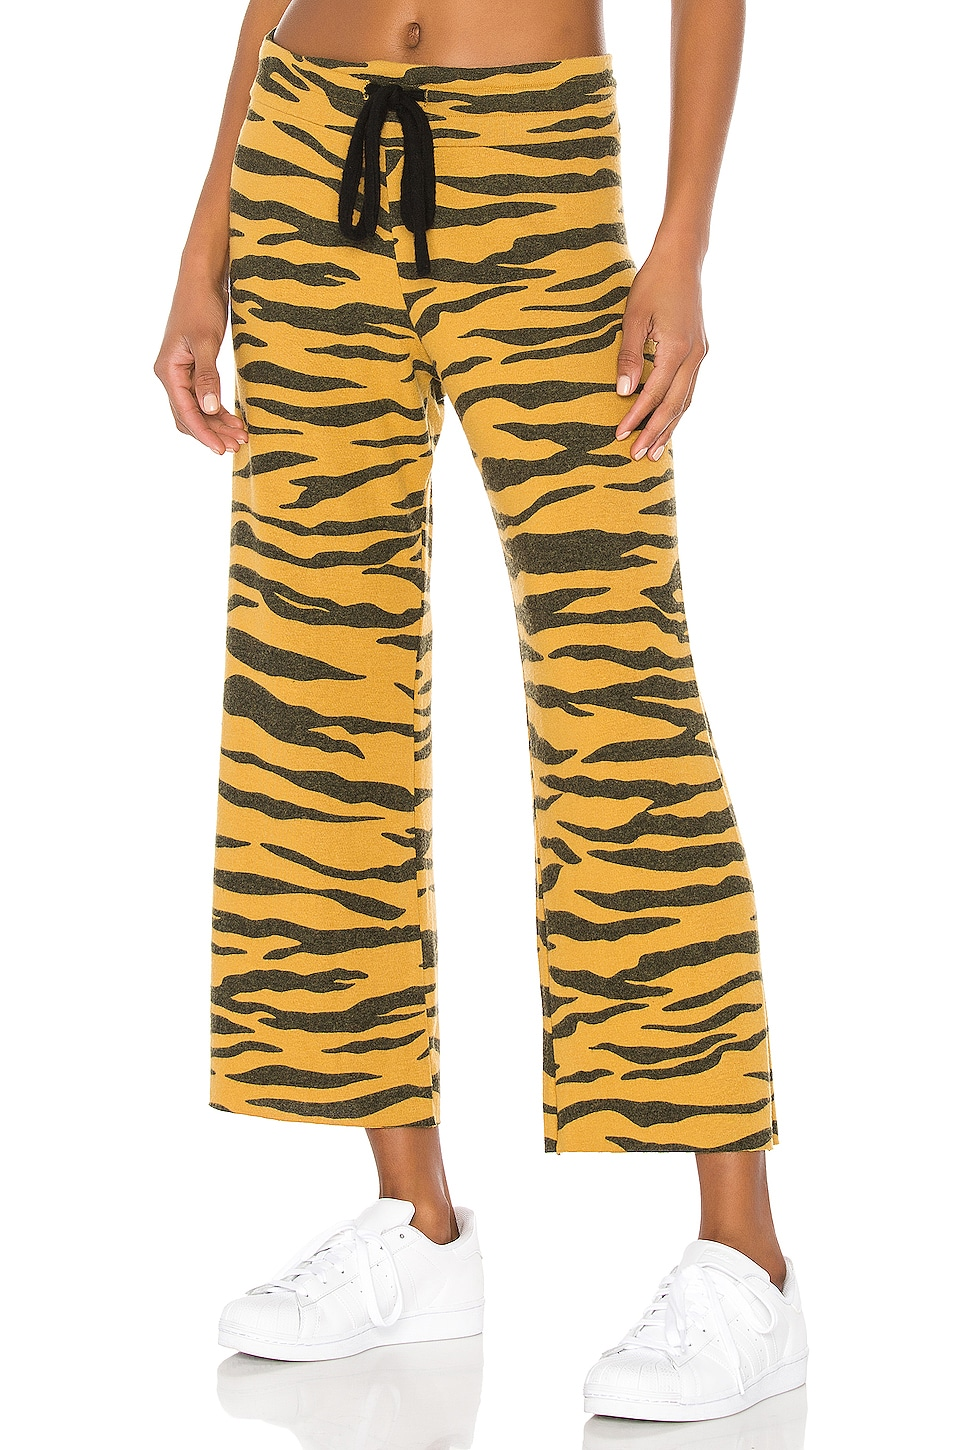 LNA Brushed Tiger Kismet Pant in Tiger